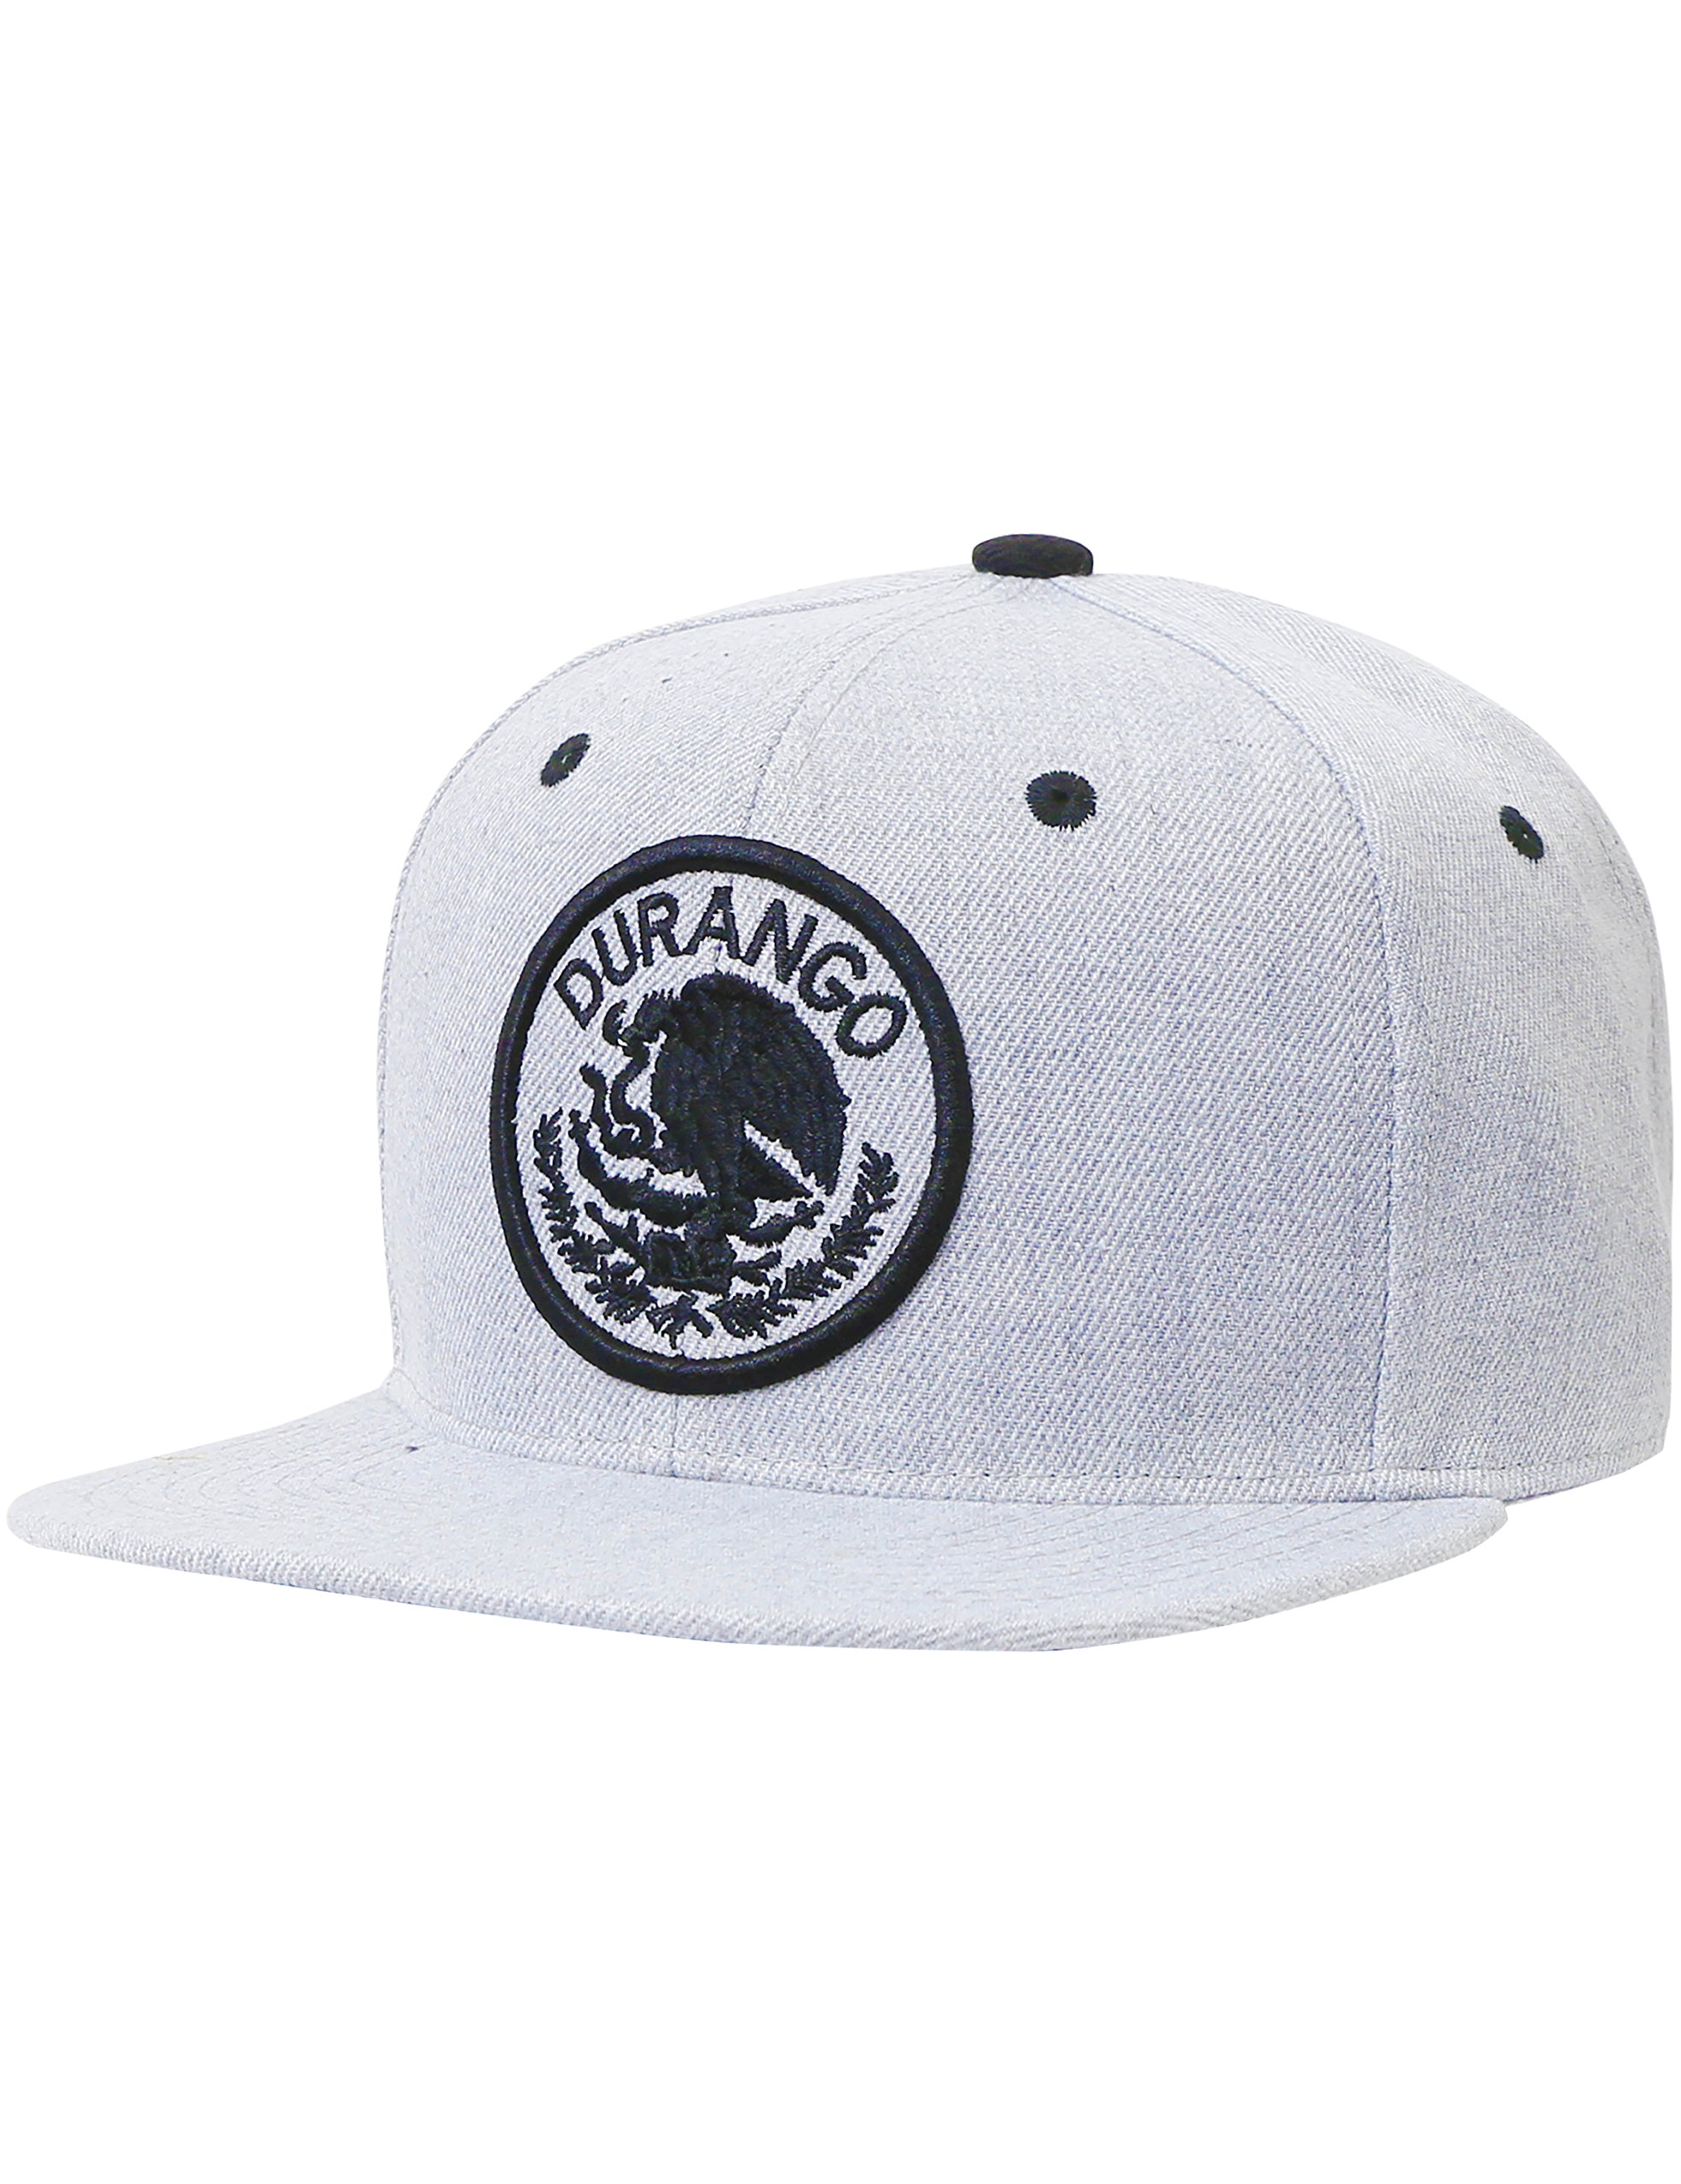 Mexican Cities National Symbol Embroidered Hat